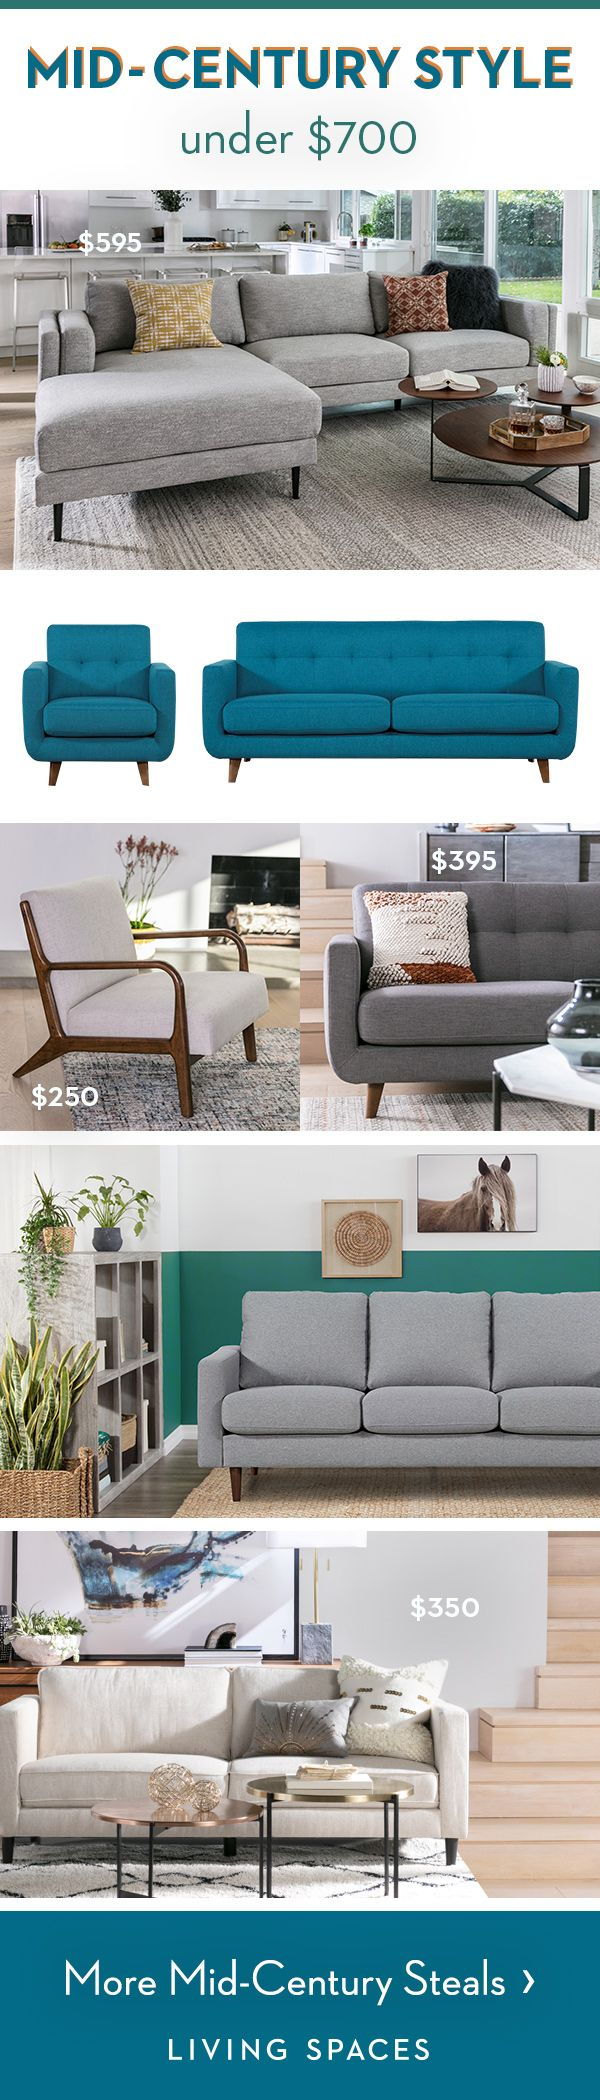 Mid Century Modern Furniture Get A Chic Retro Look For Way Less